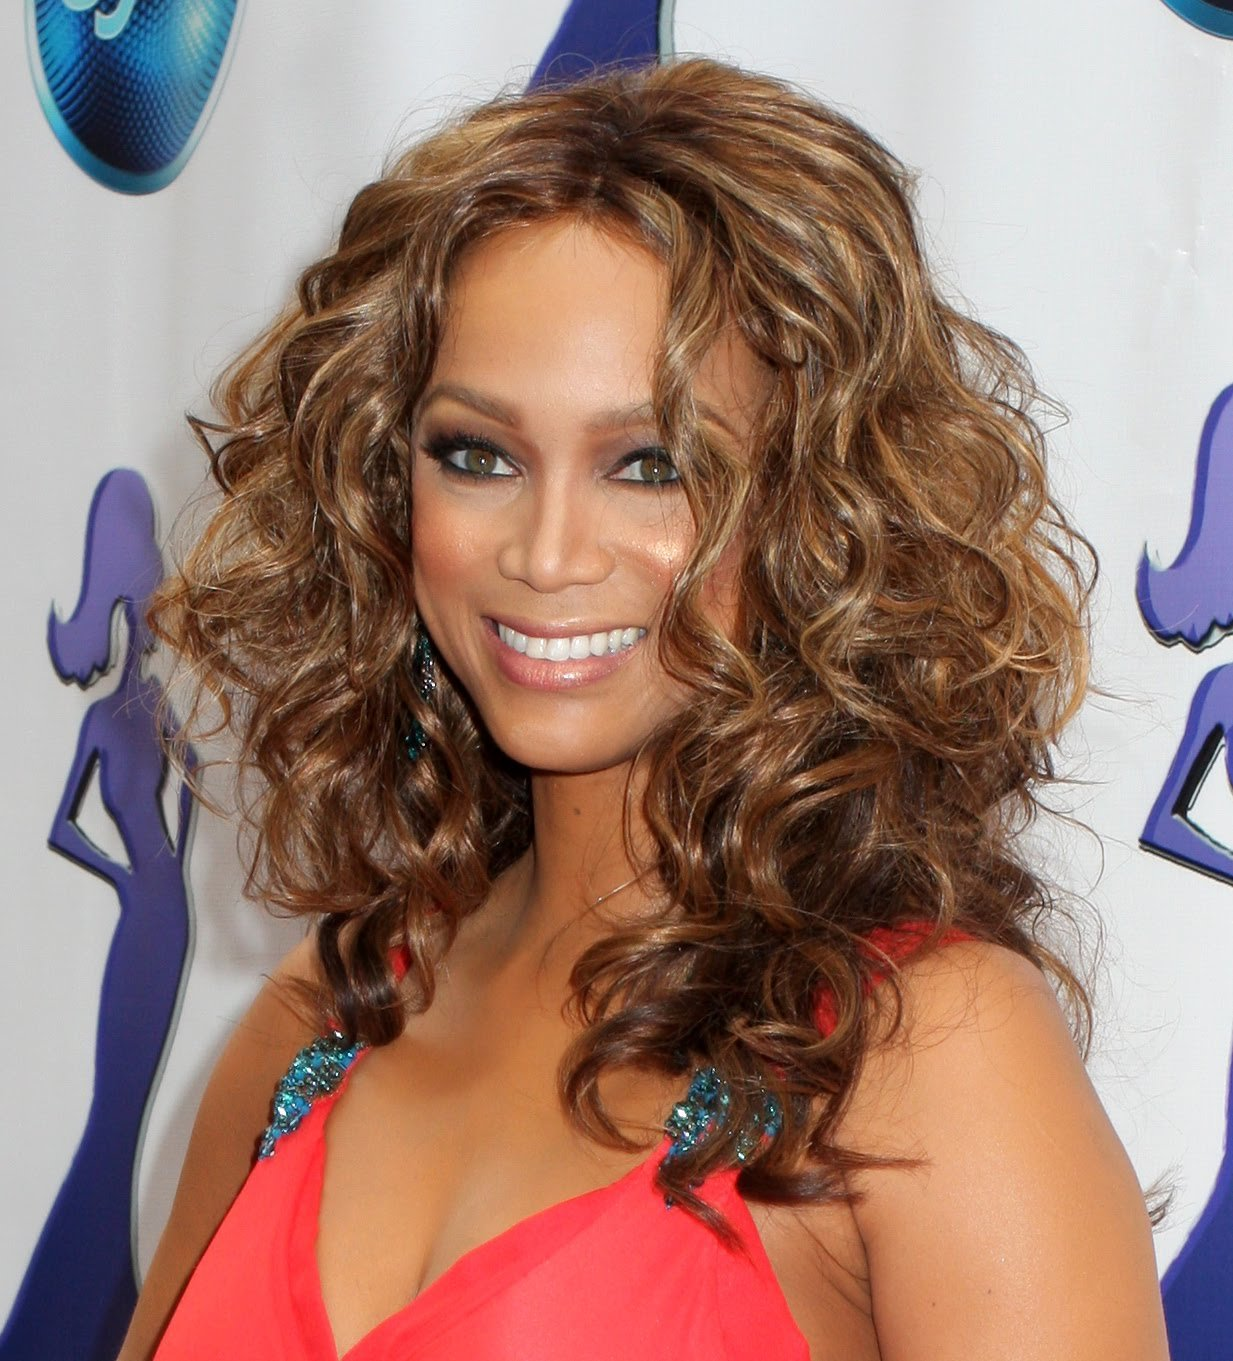 The Best Hollywood Trendy Tyra Banks Hairstyles 2012 Pictures